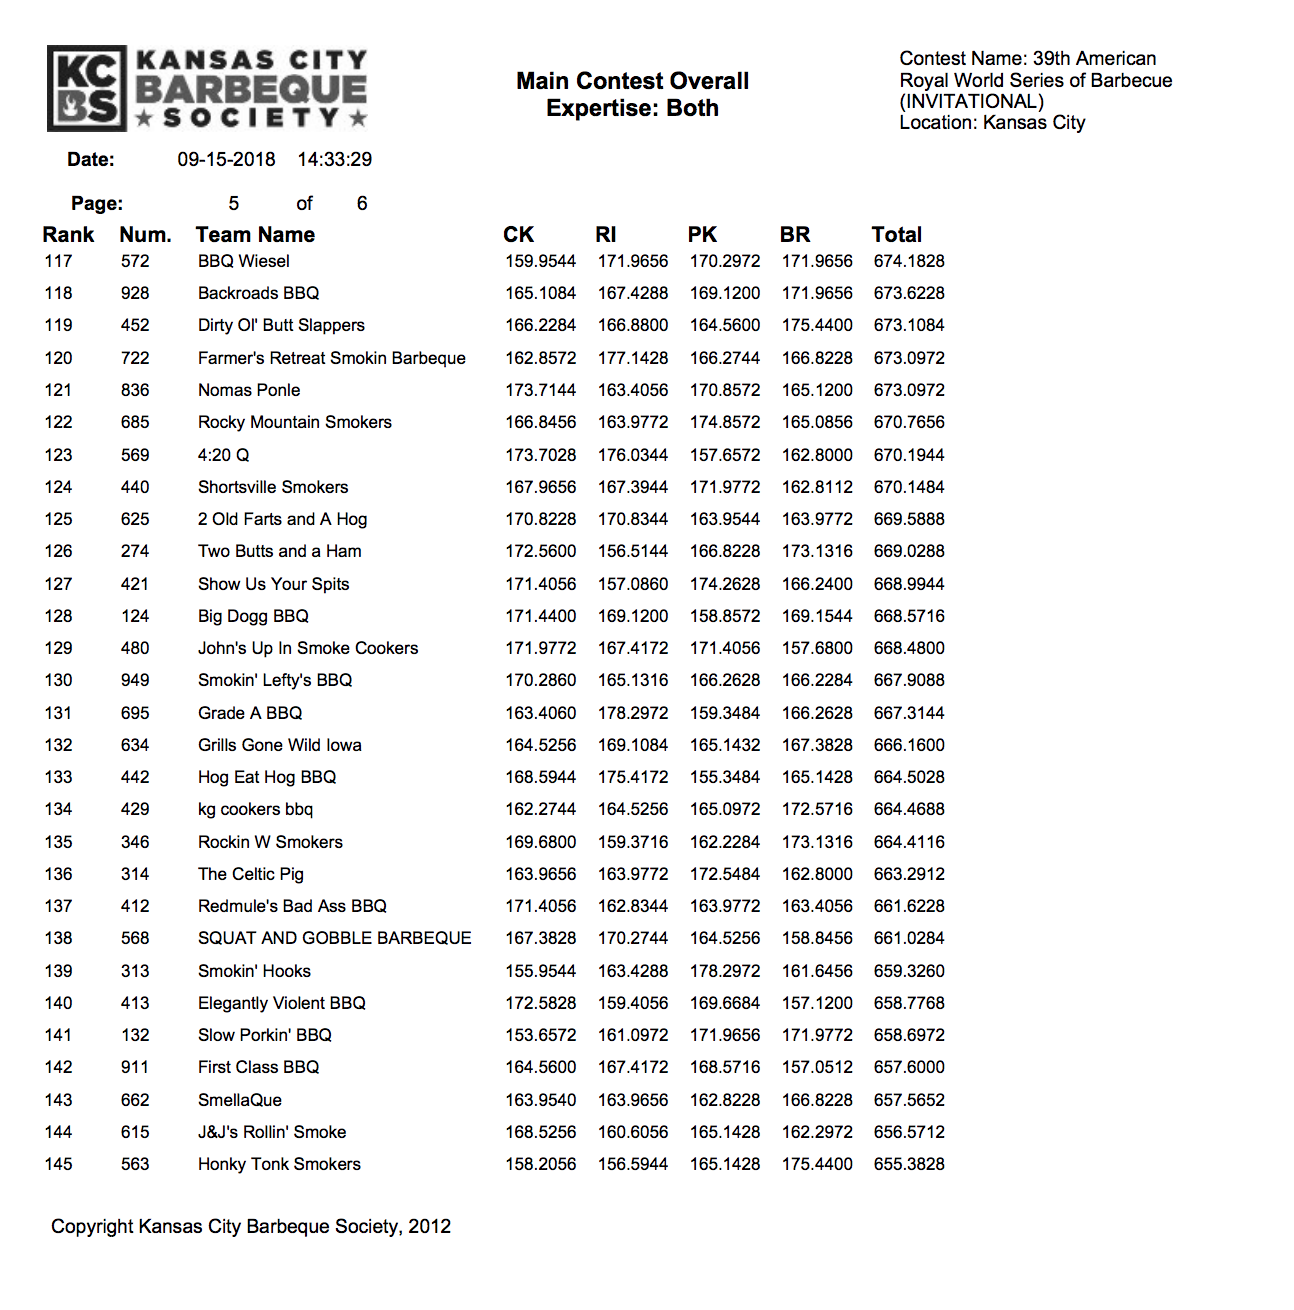 American Royal Invitational Results 2018 page 6